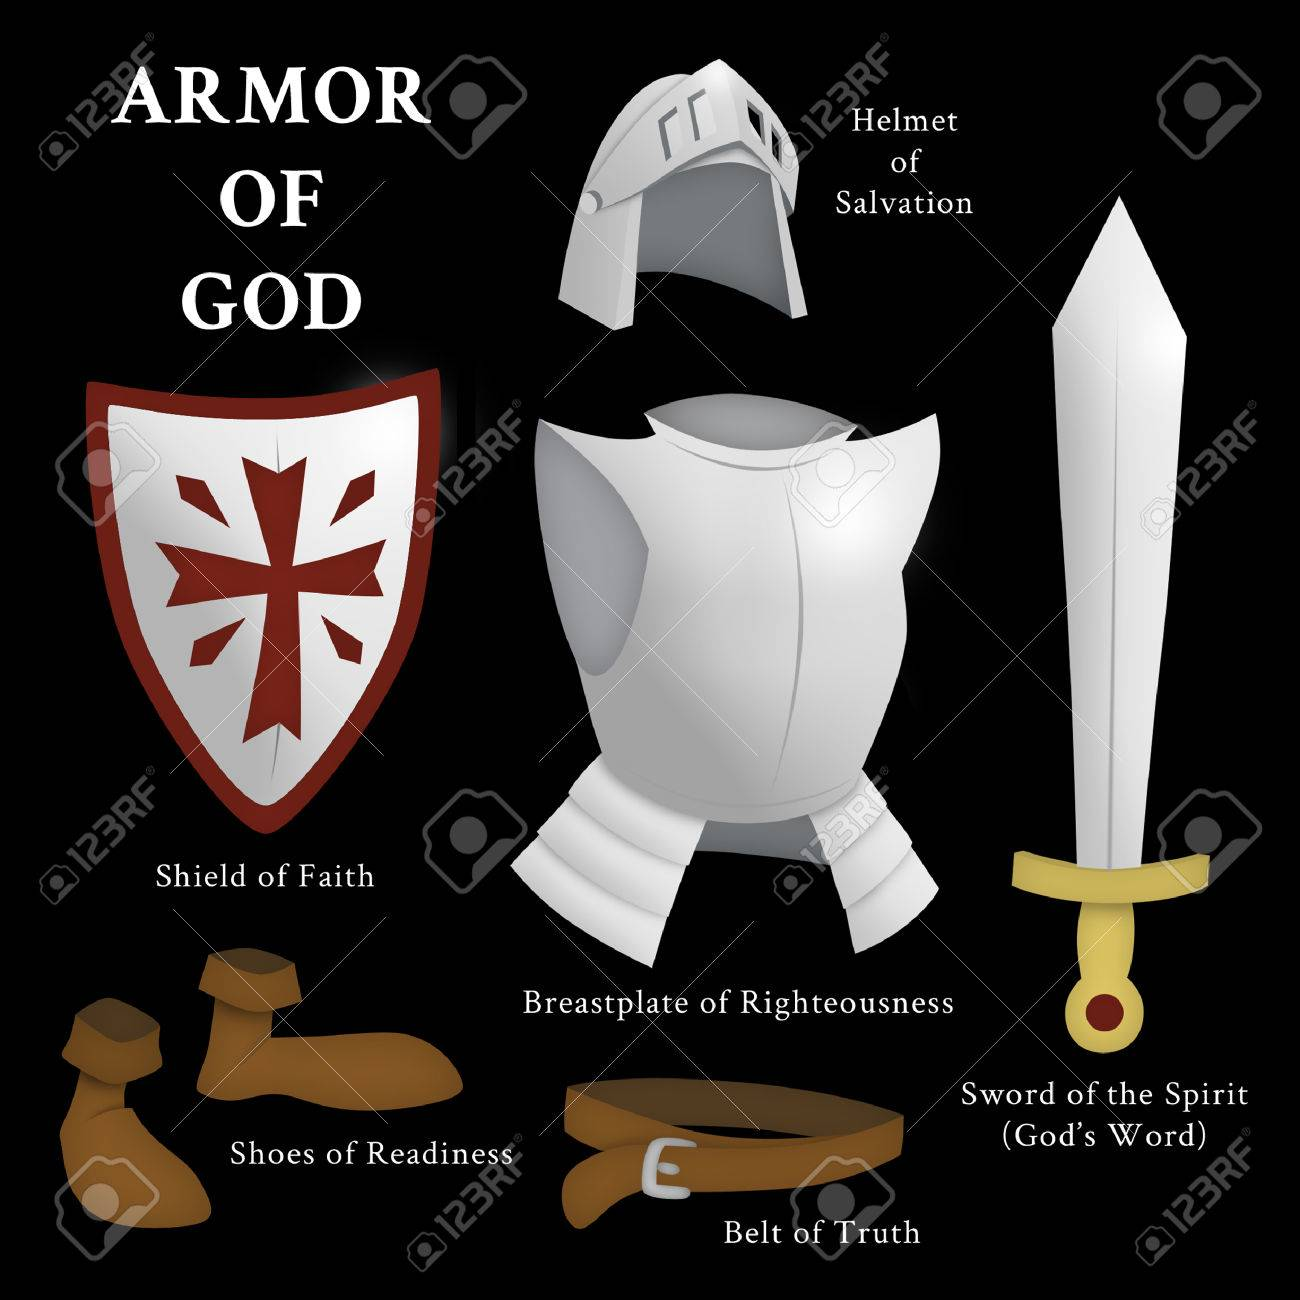 Armor Of God Ephesians 6 13 17 Stock Photo Picture And Royalty